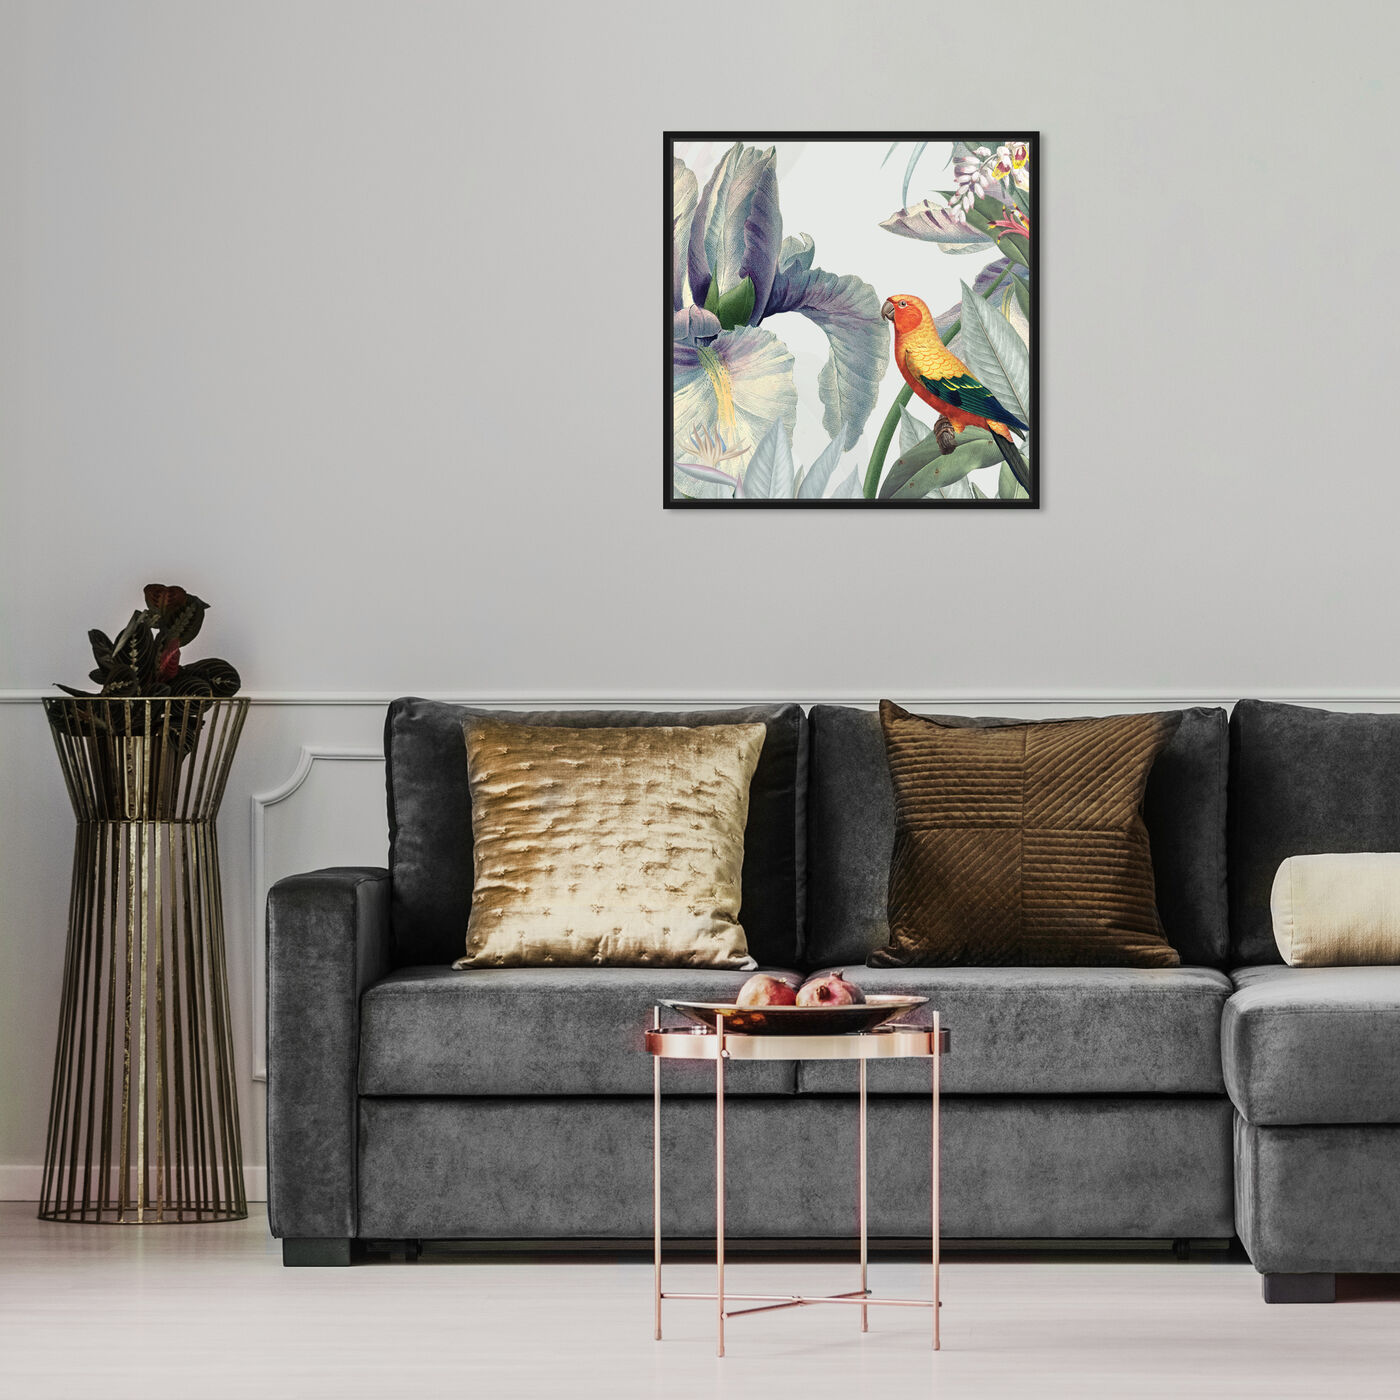 Hanging view of Natura featuring animals and birds art.